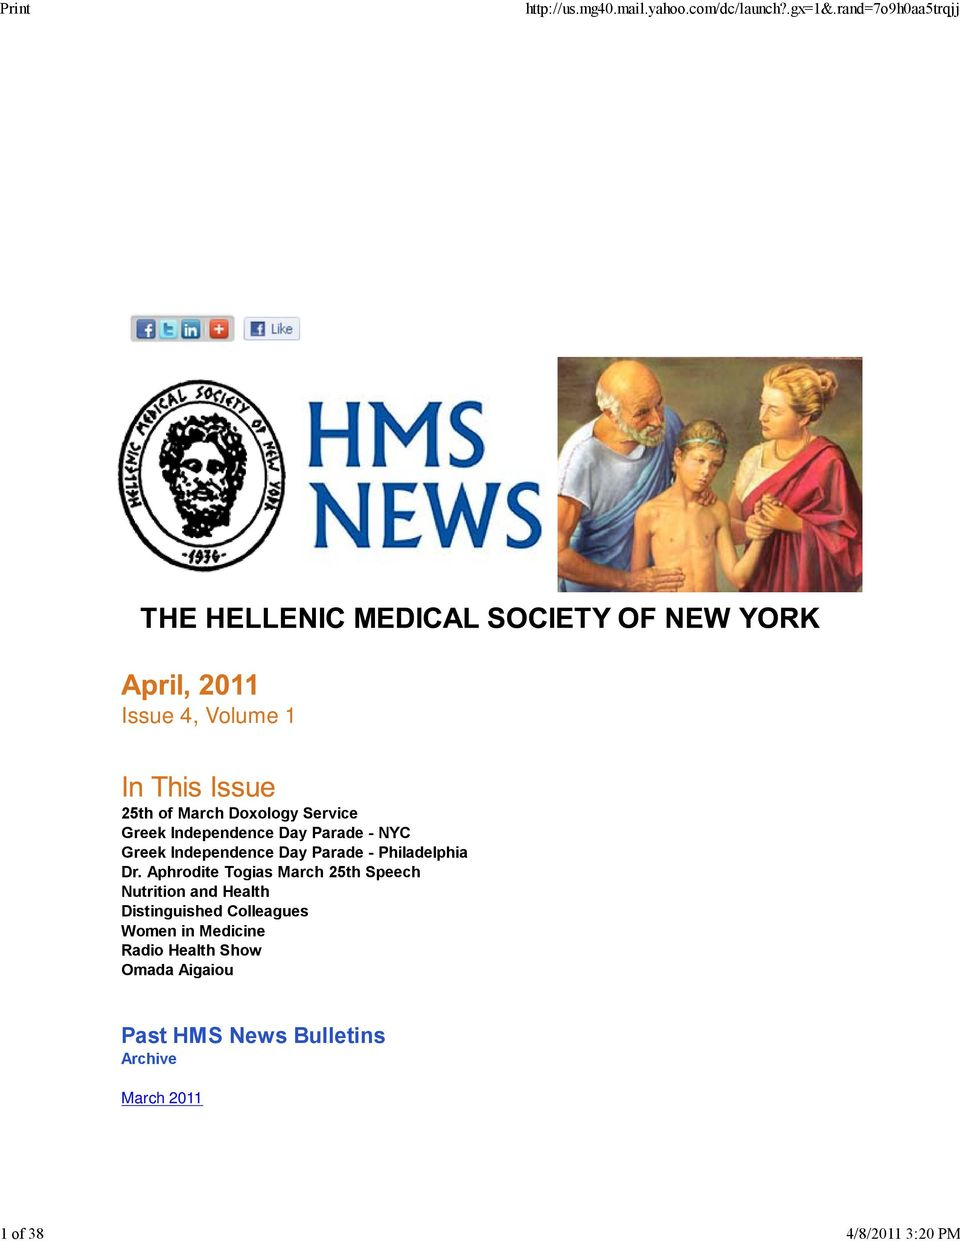 Click here You're receiving this email because of your relationship with The Hellenic Medical Society of New York. Please confirm your continued interest in receiving email from us.